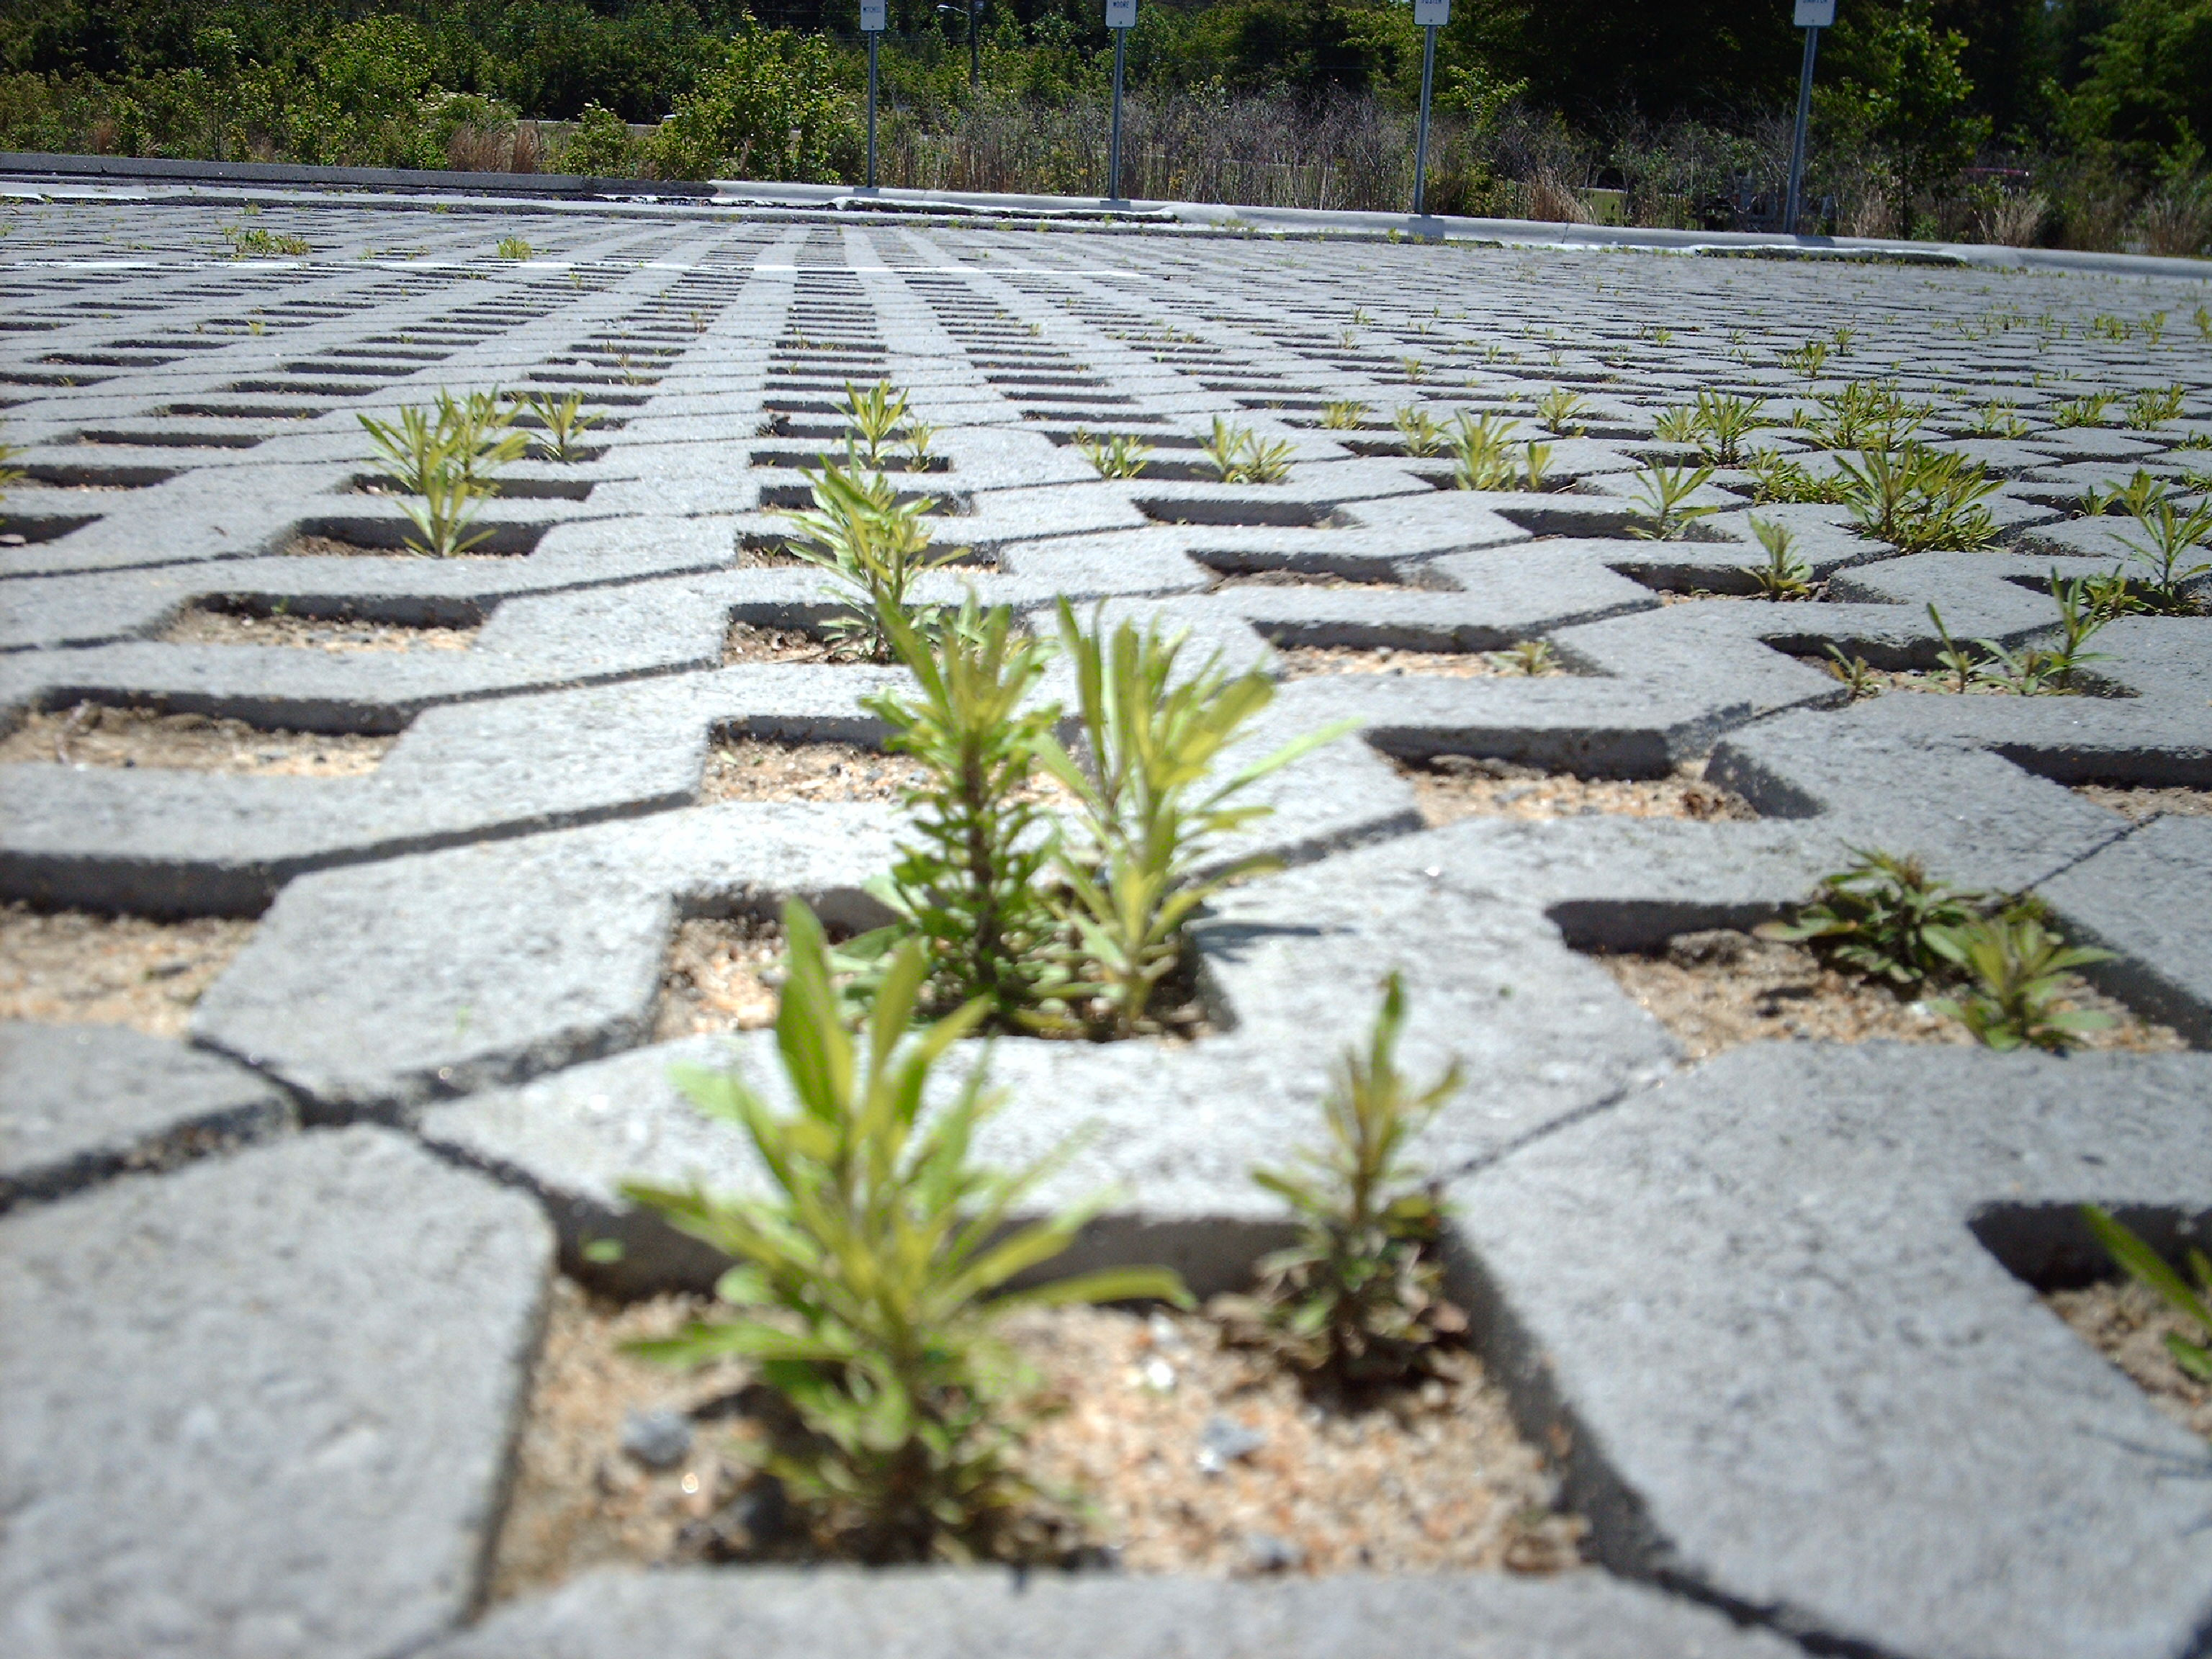 [Webcast] Advanced Stormwater Design: Permeable Pavement